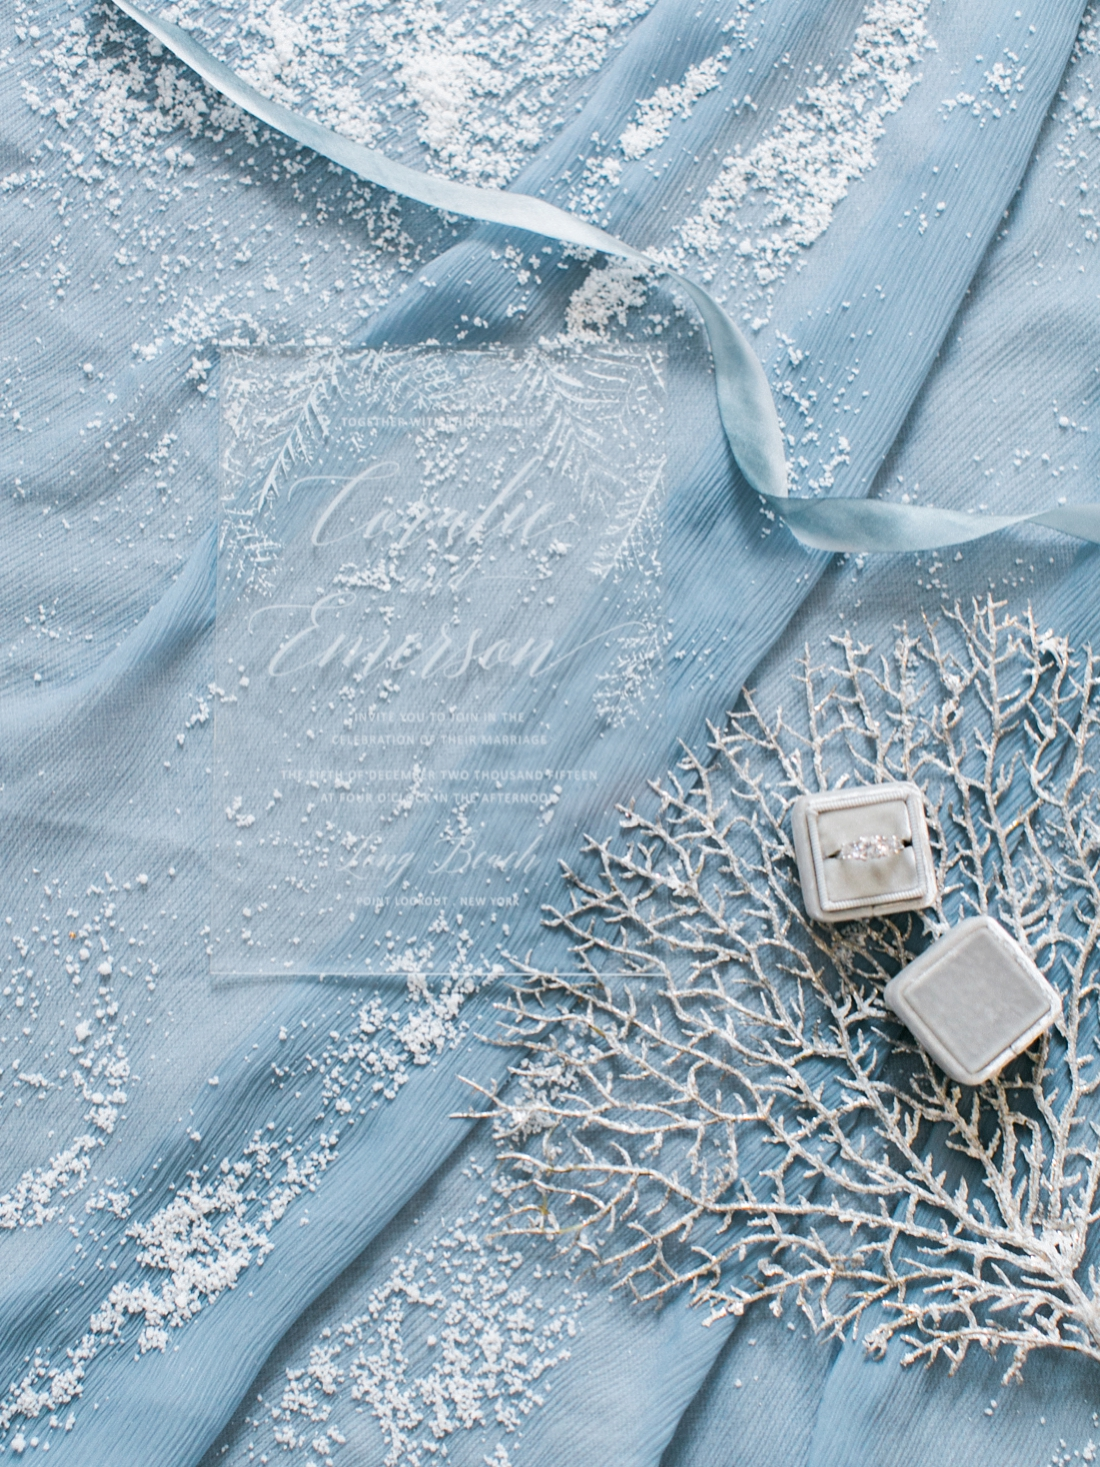 Wintery Blues Fine Art Wedding Inspiration Kylee Yee-102